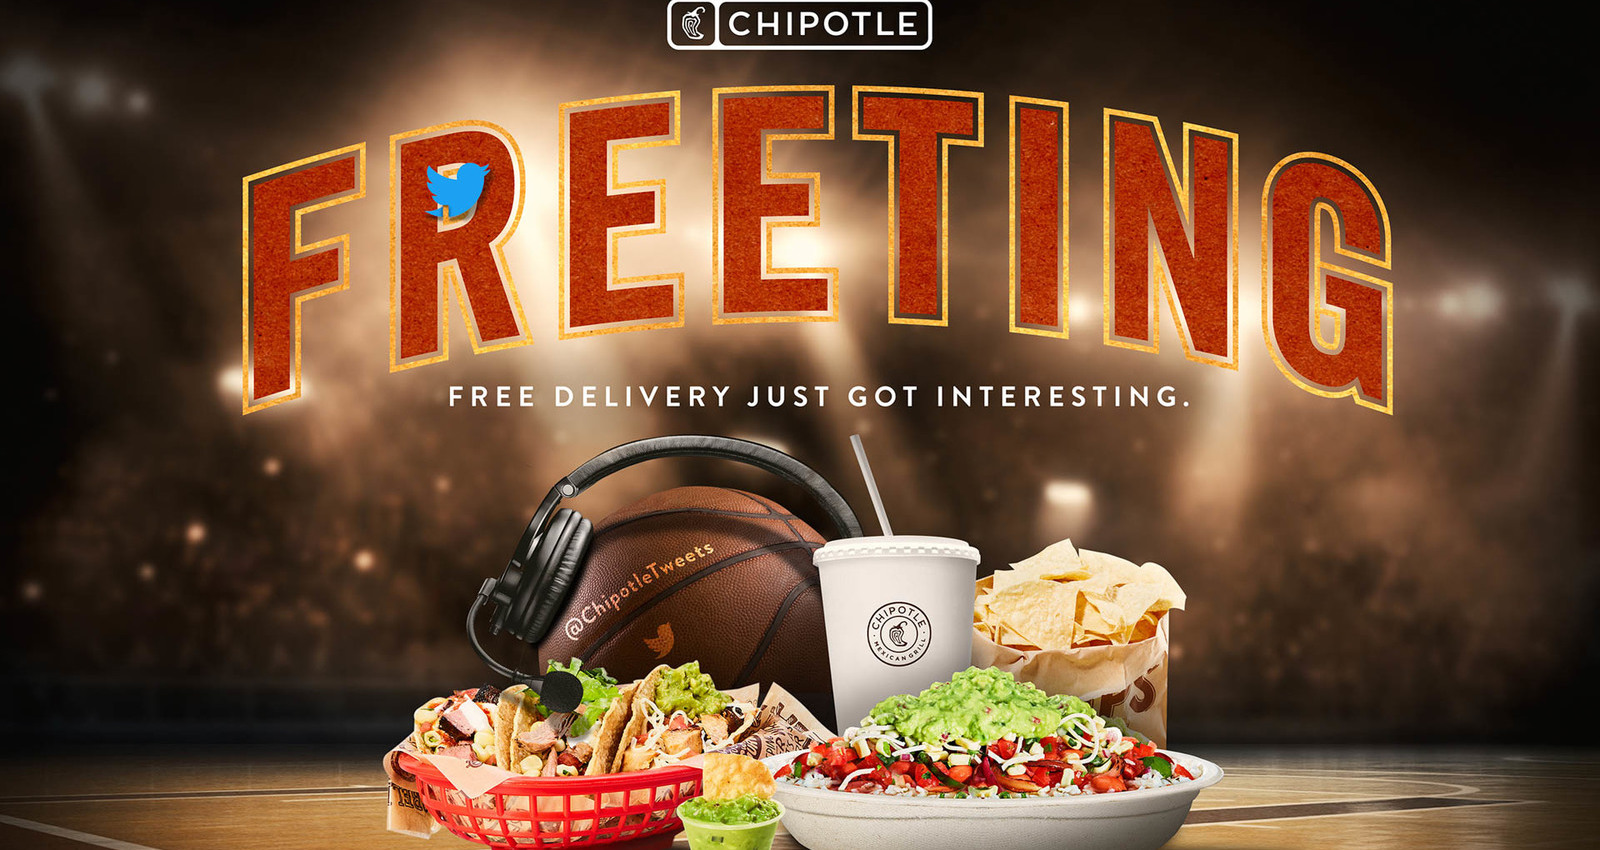 Chipotle Freeting Wins the Pro Basketball Finals